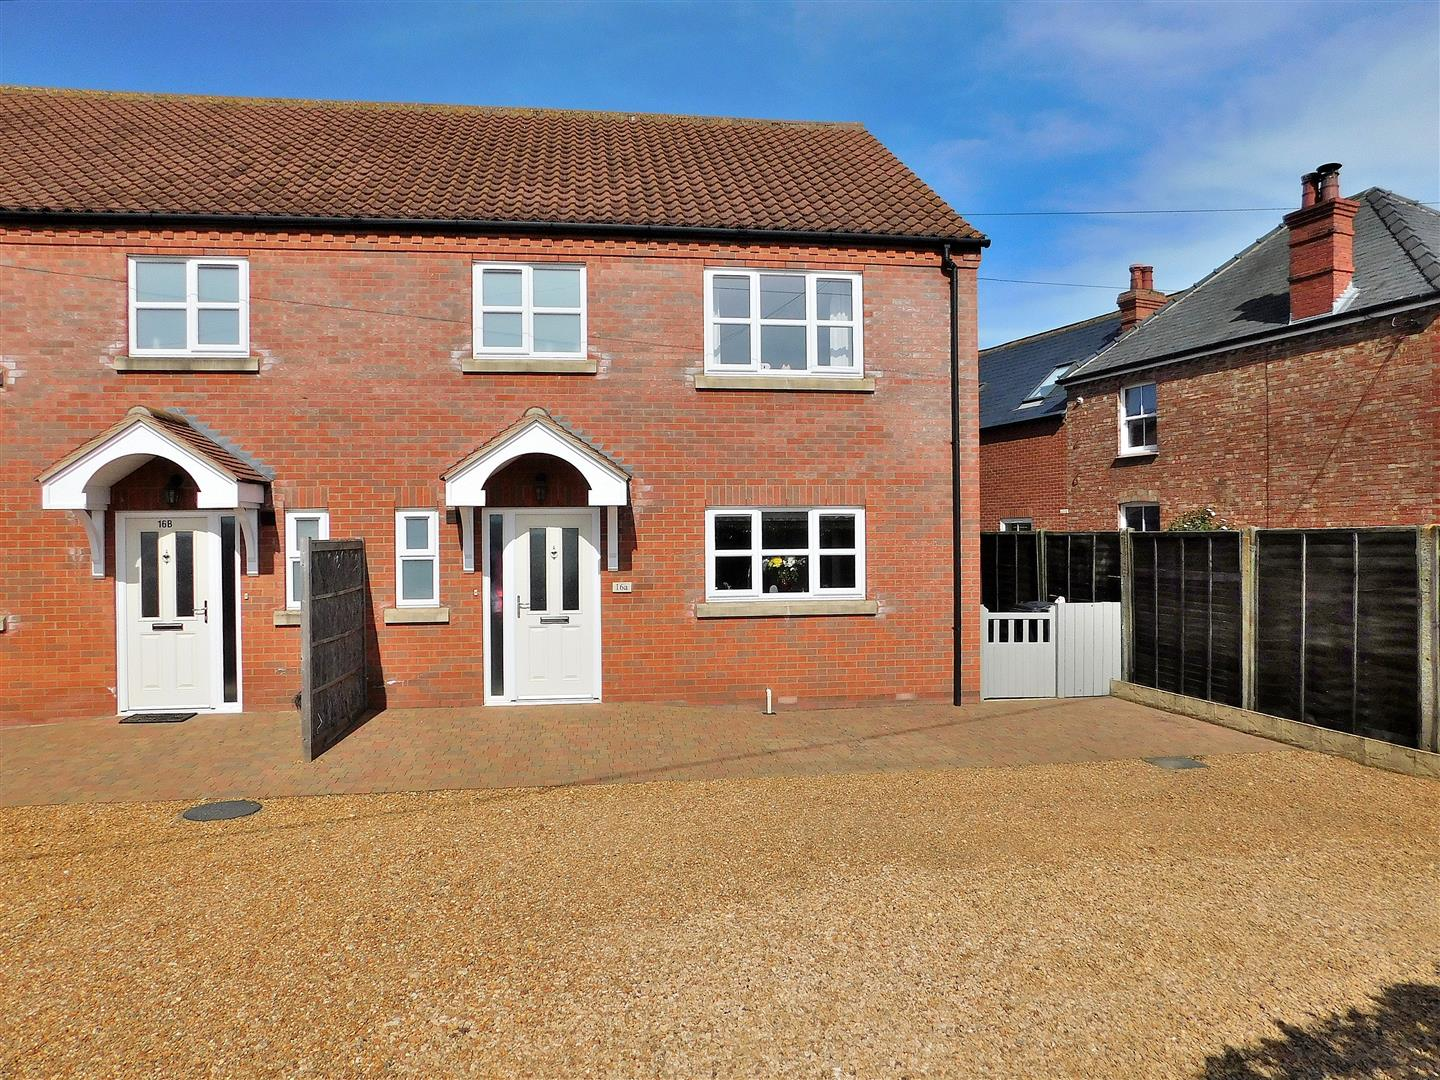 3 bed semi-detached house for sale in Station Road, King's Lynn - Property Image 1